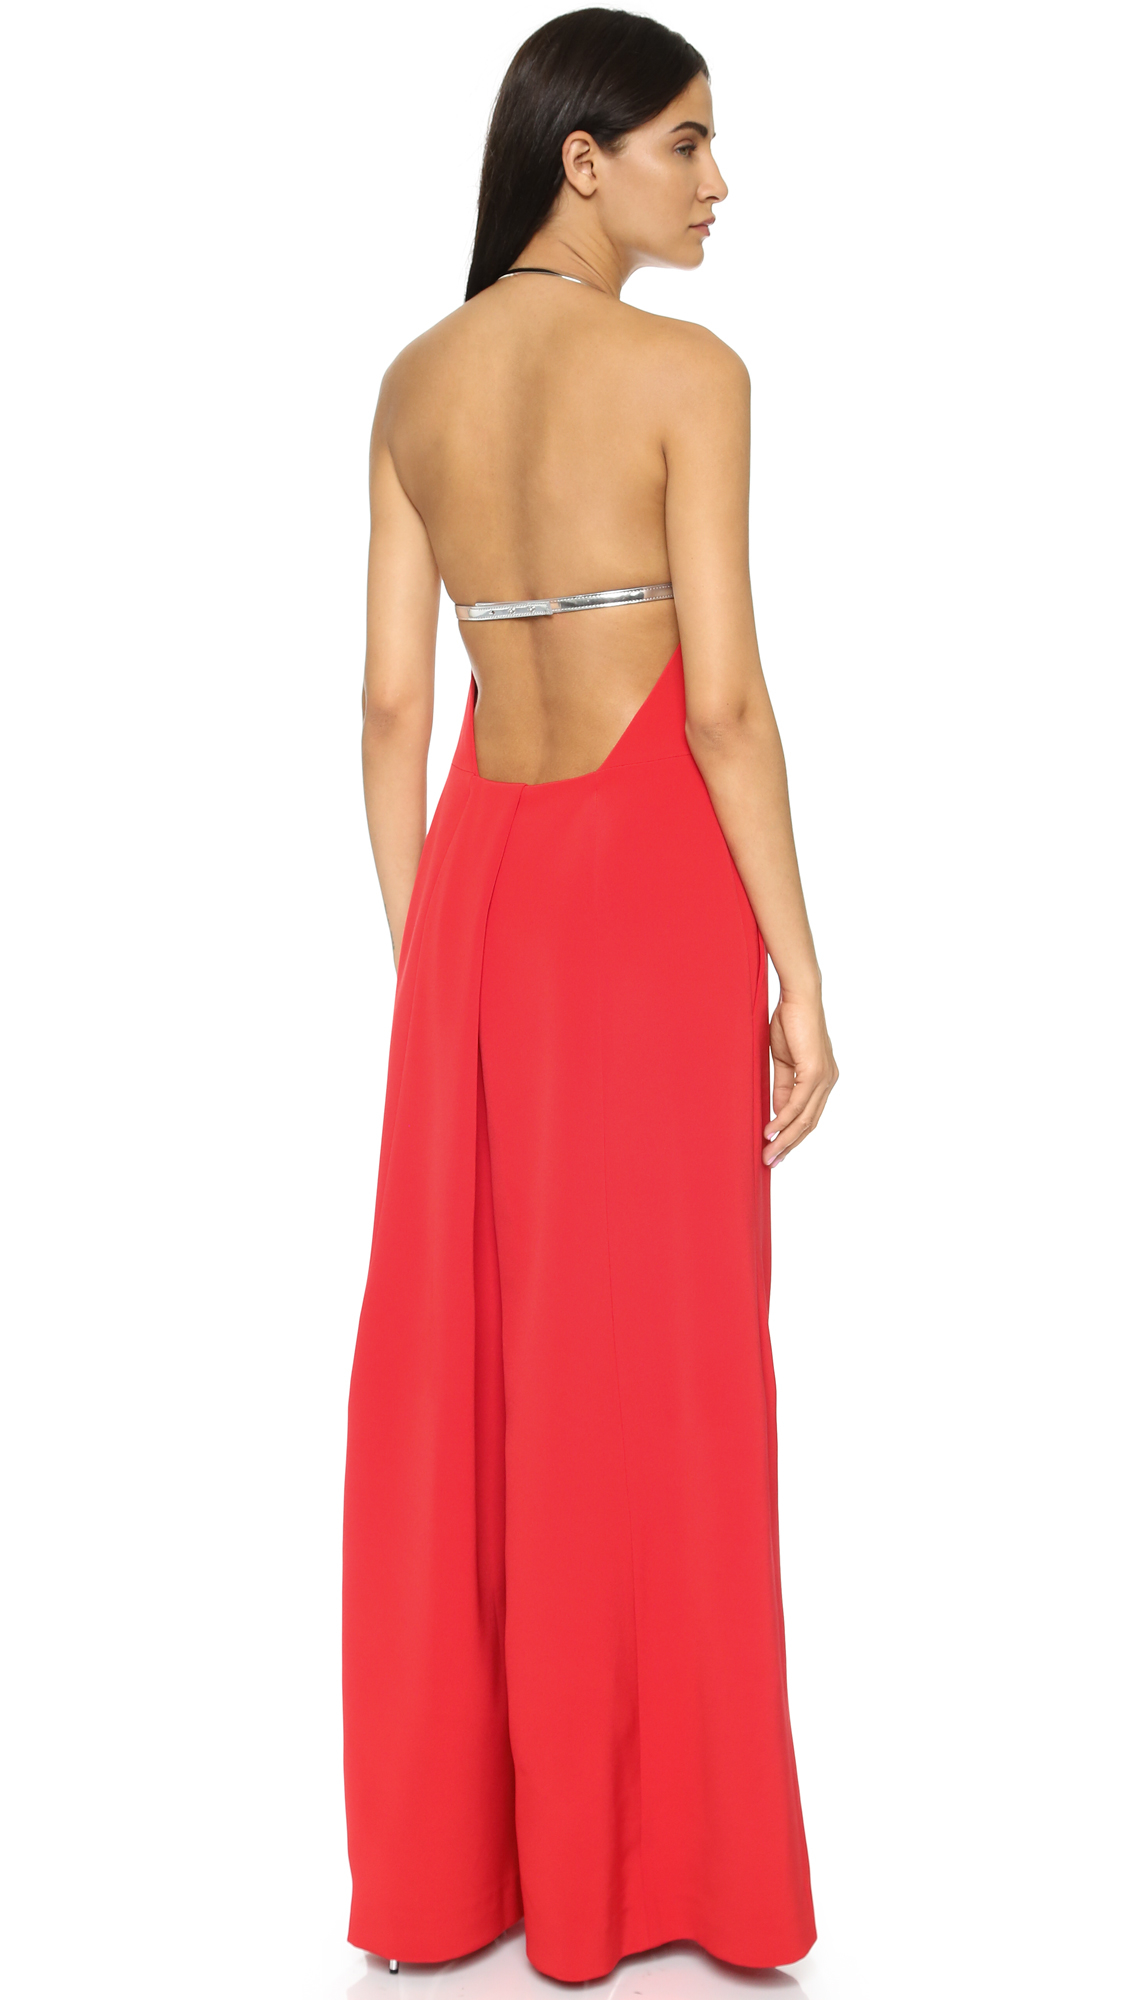 Kaufman franco Sleeveless Jumpsuit in Red | Lyst